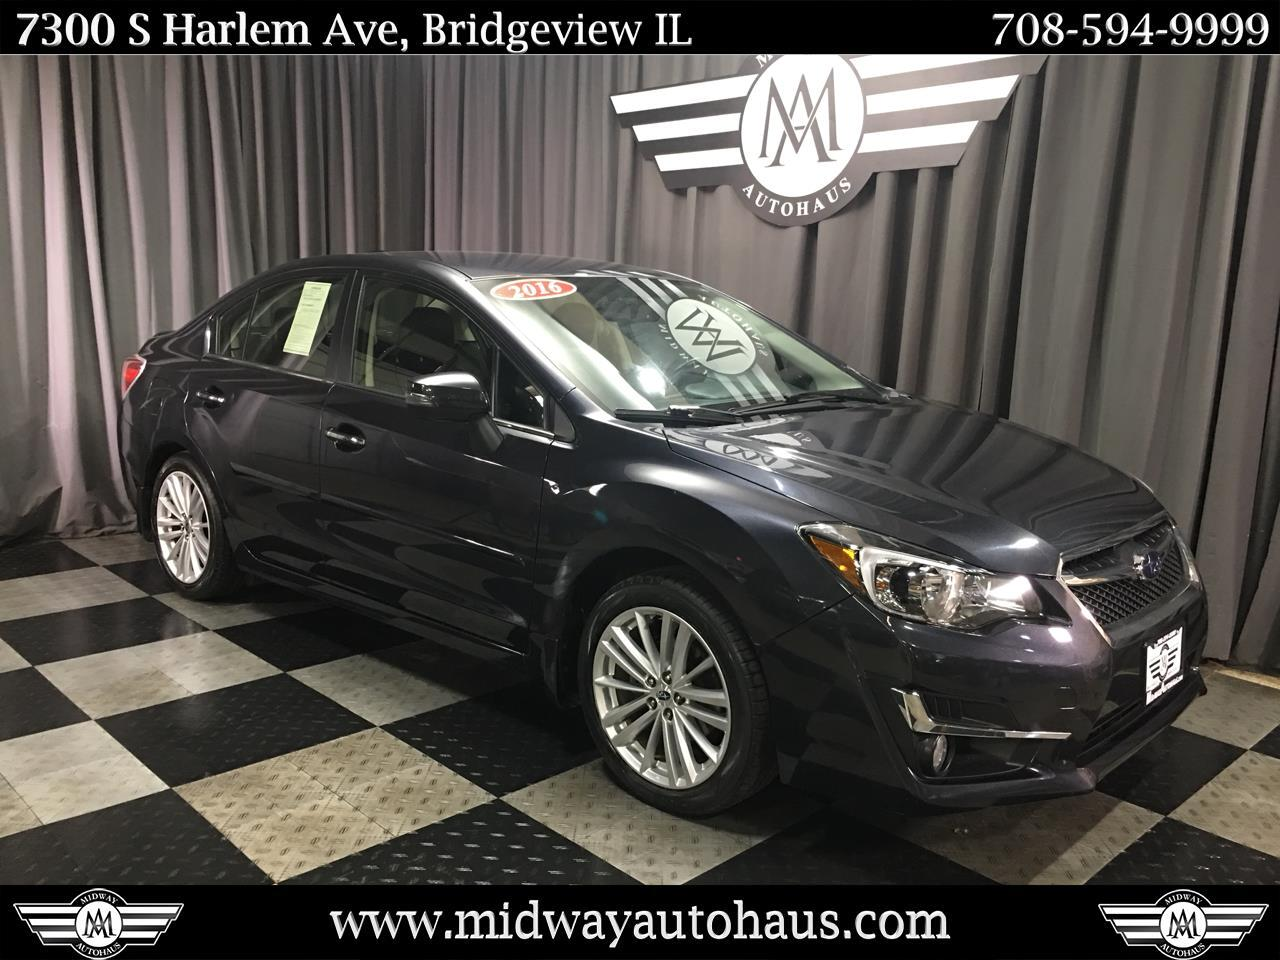 Pre-Owned 2016 Subaru Impreza Sedan 4dr CVT 2.0i Limited